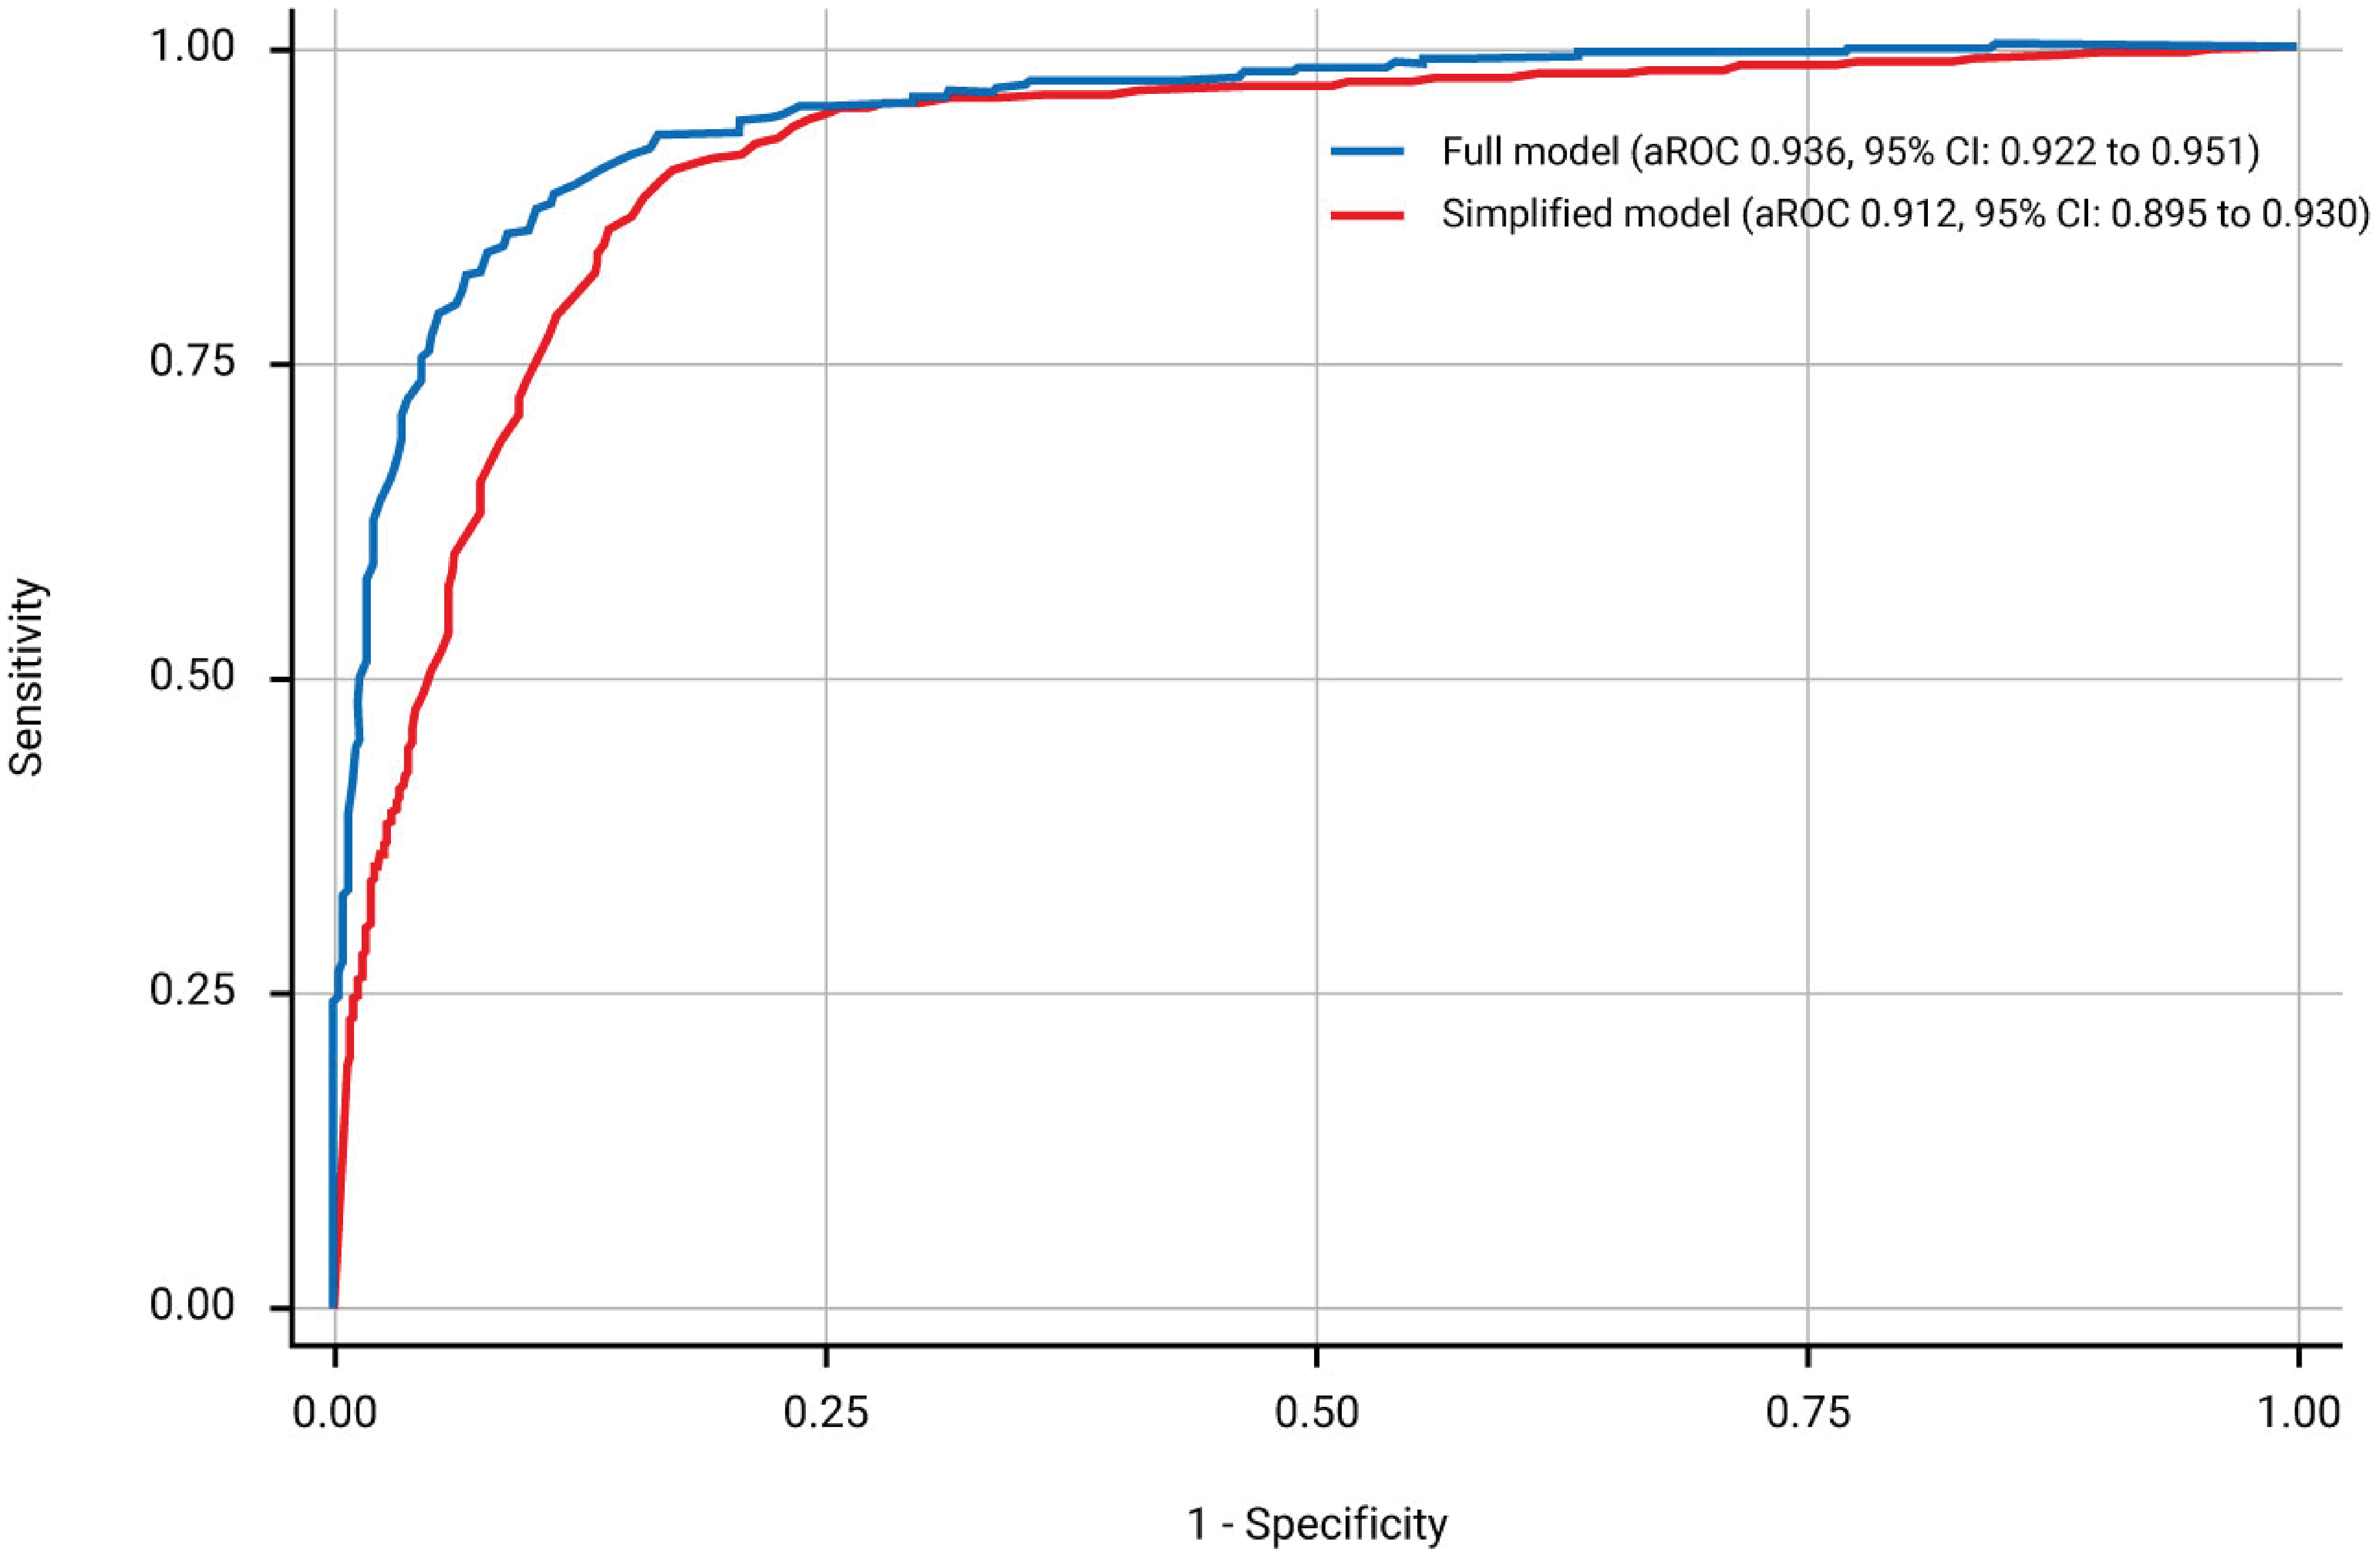 Receiver operating characteristics curves and corresponding area under the receiver operating characteristics curve (aROC) of the two models.